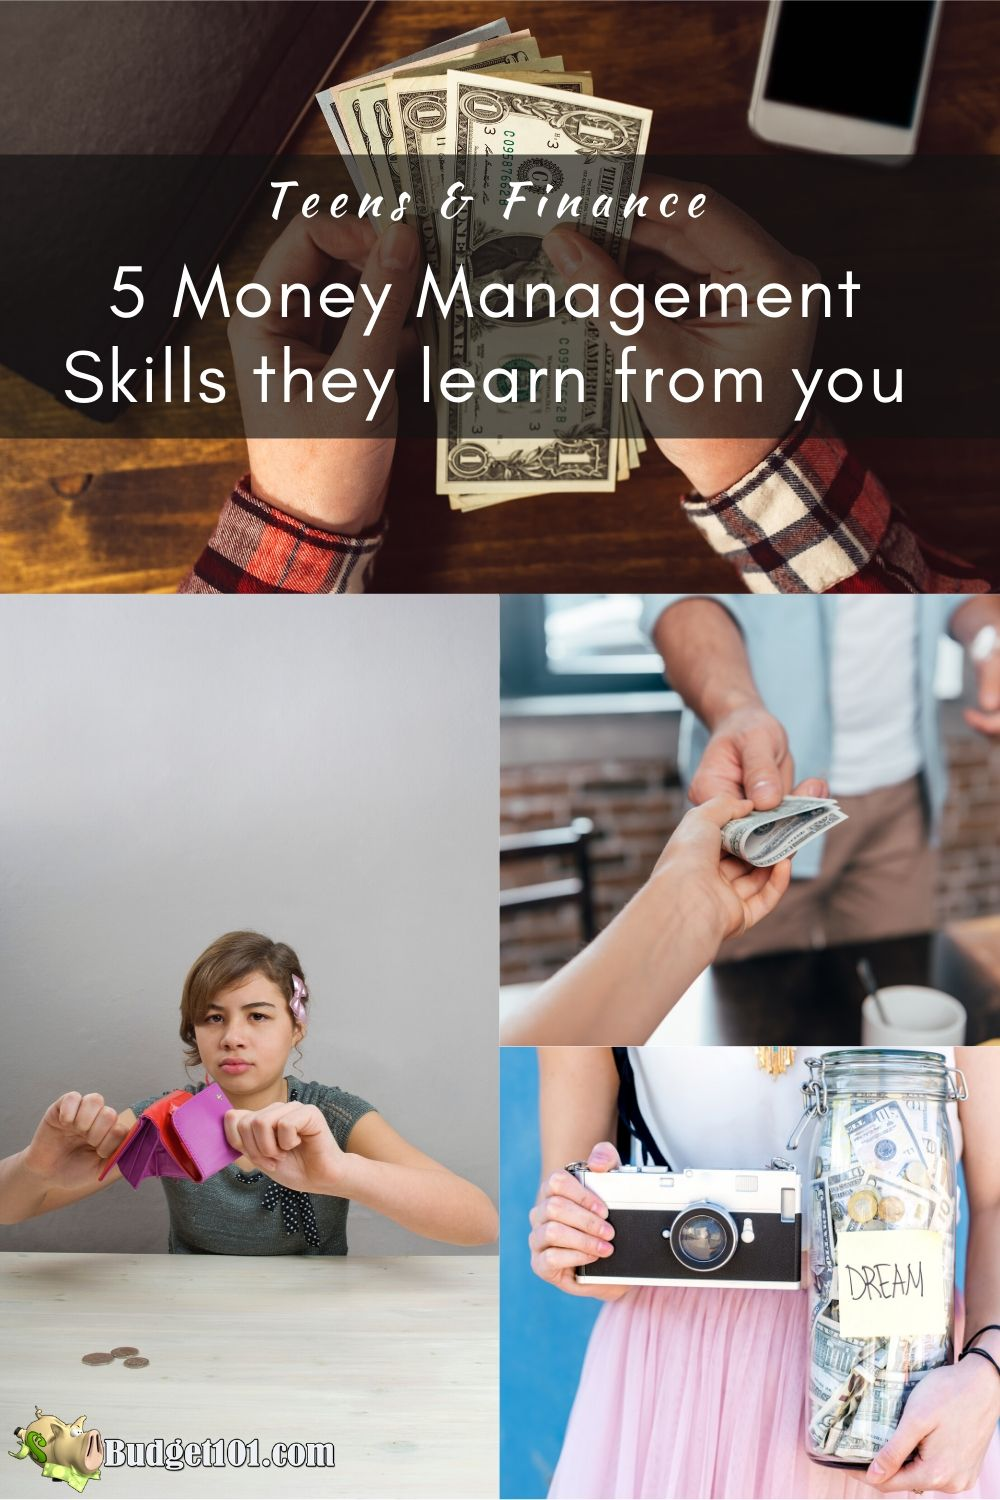 When it comes to teens and finance they learn their money management skills from their parents, here are 5 ways you're teaching them, intentionally or not. #Budget101 #MoneyManagement #TeensandFinance